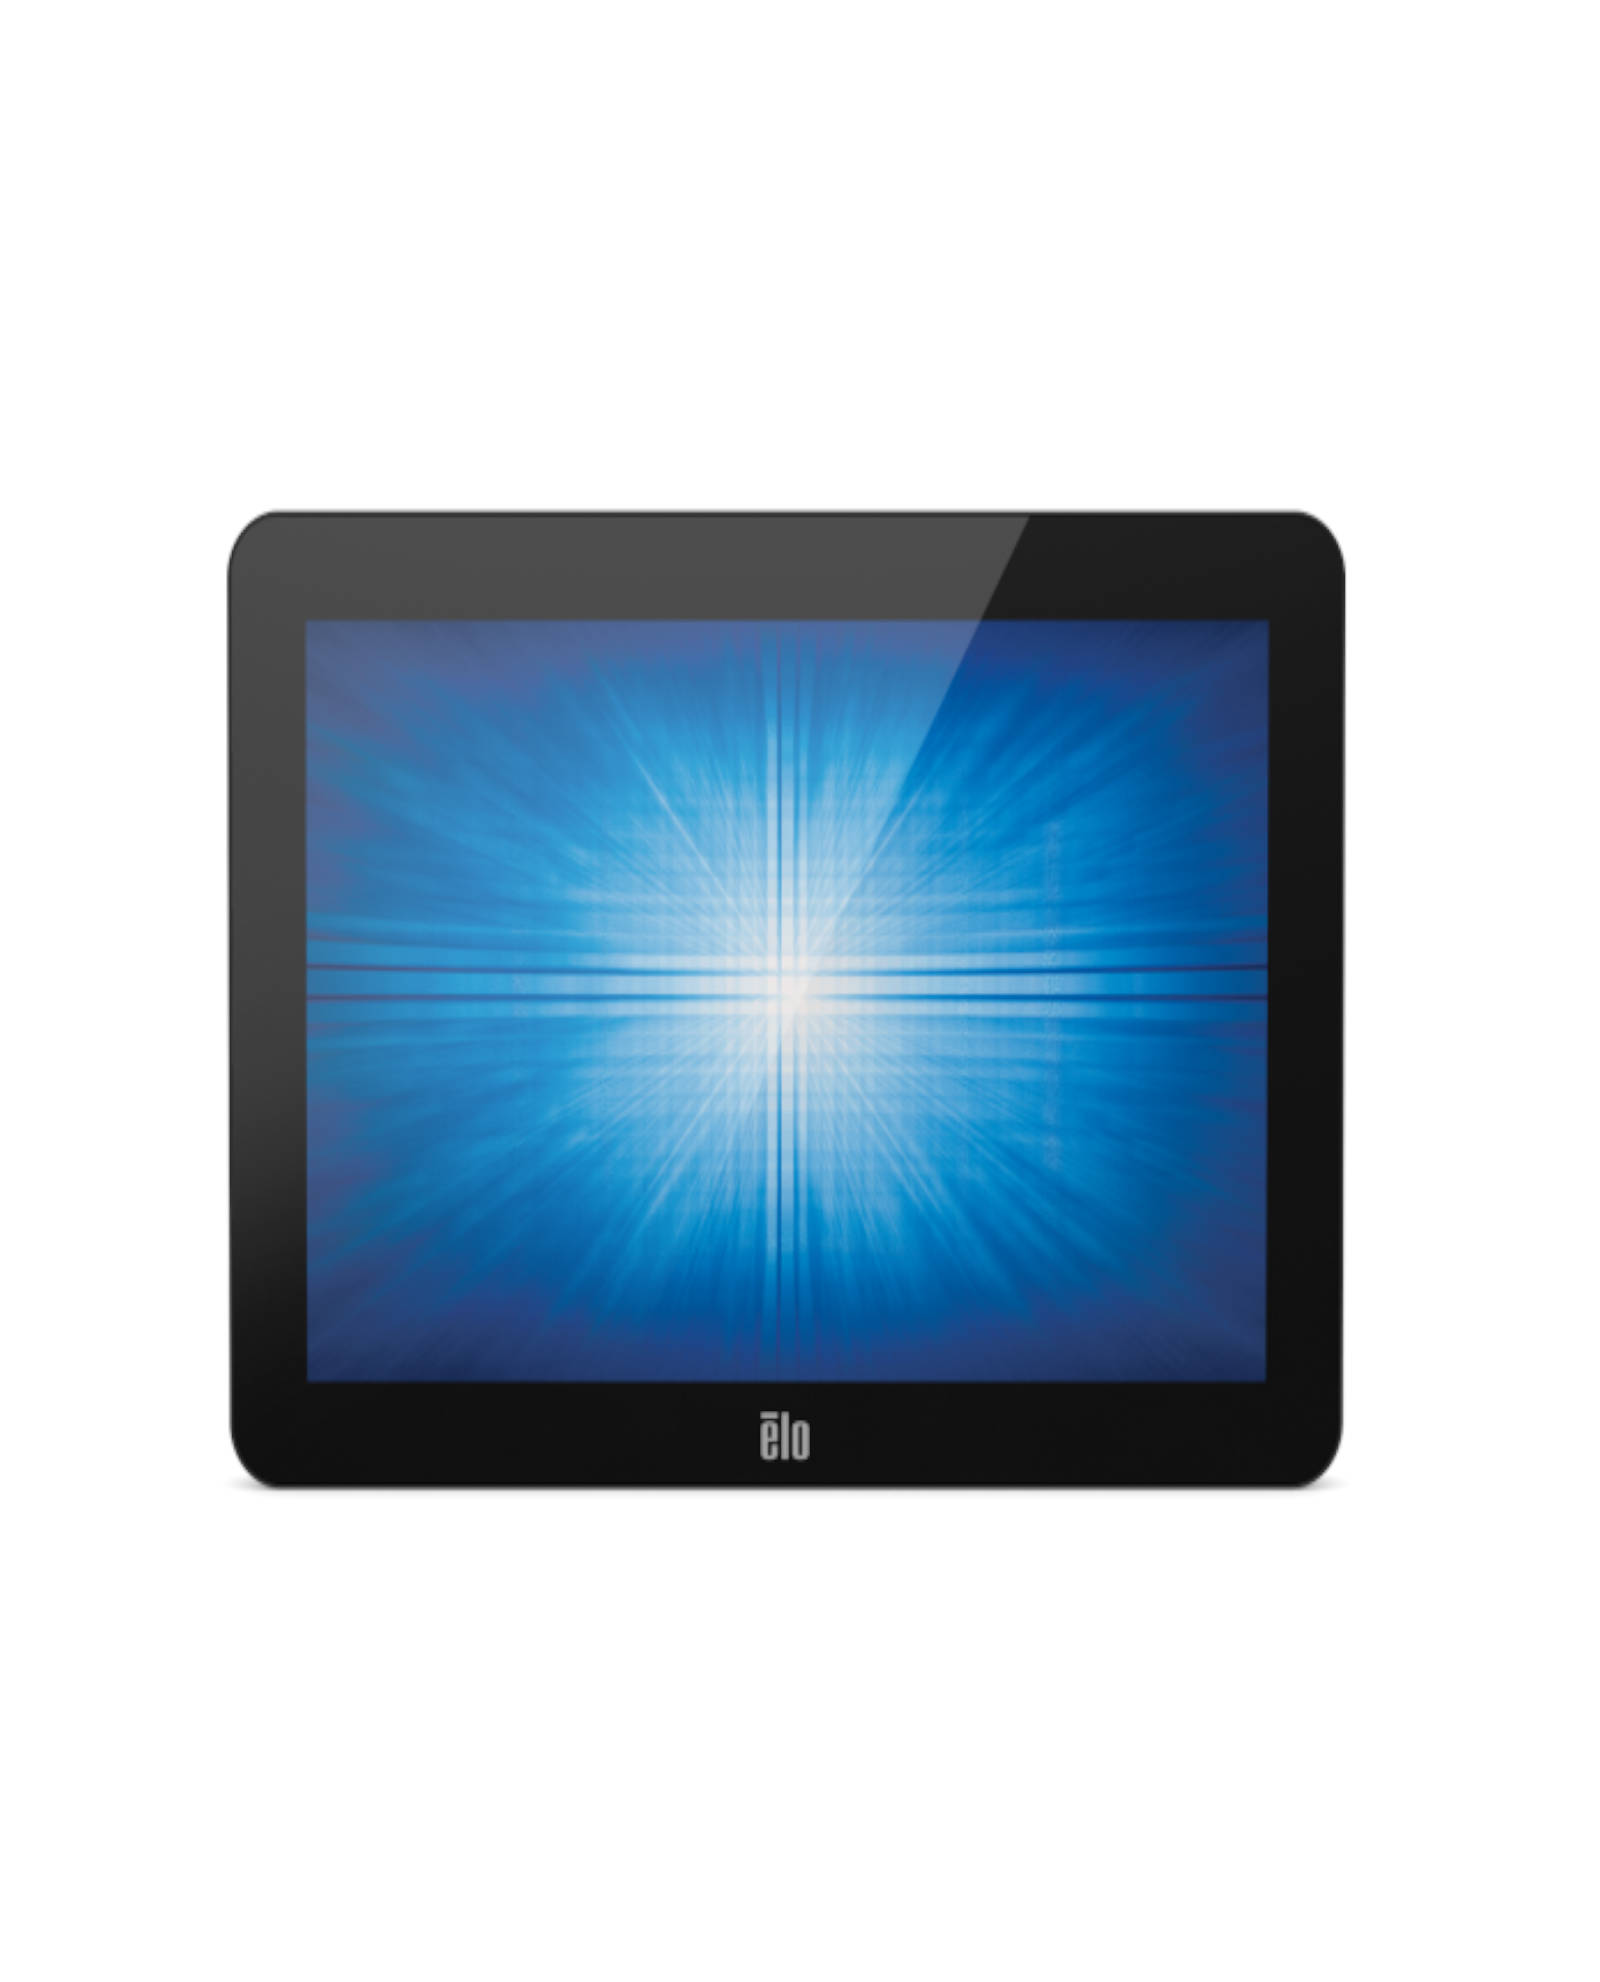 Elo 1002l Touchscreen Monitor Front